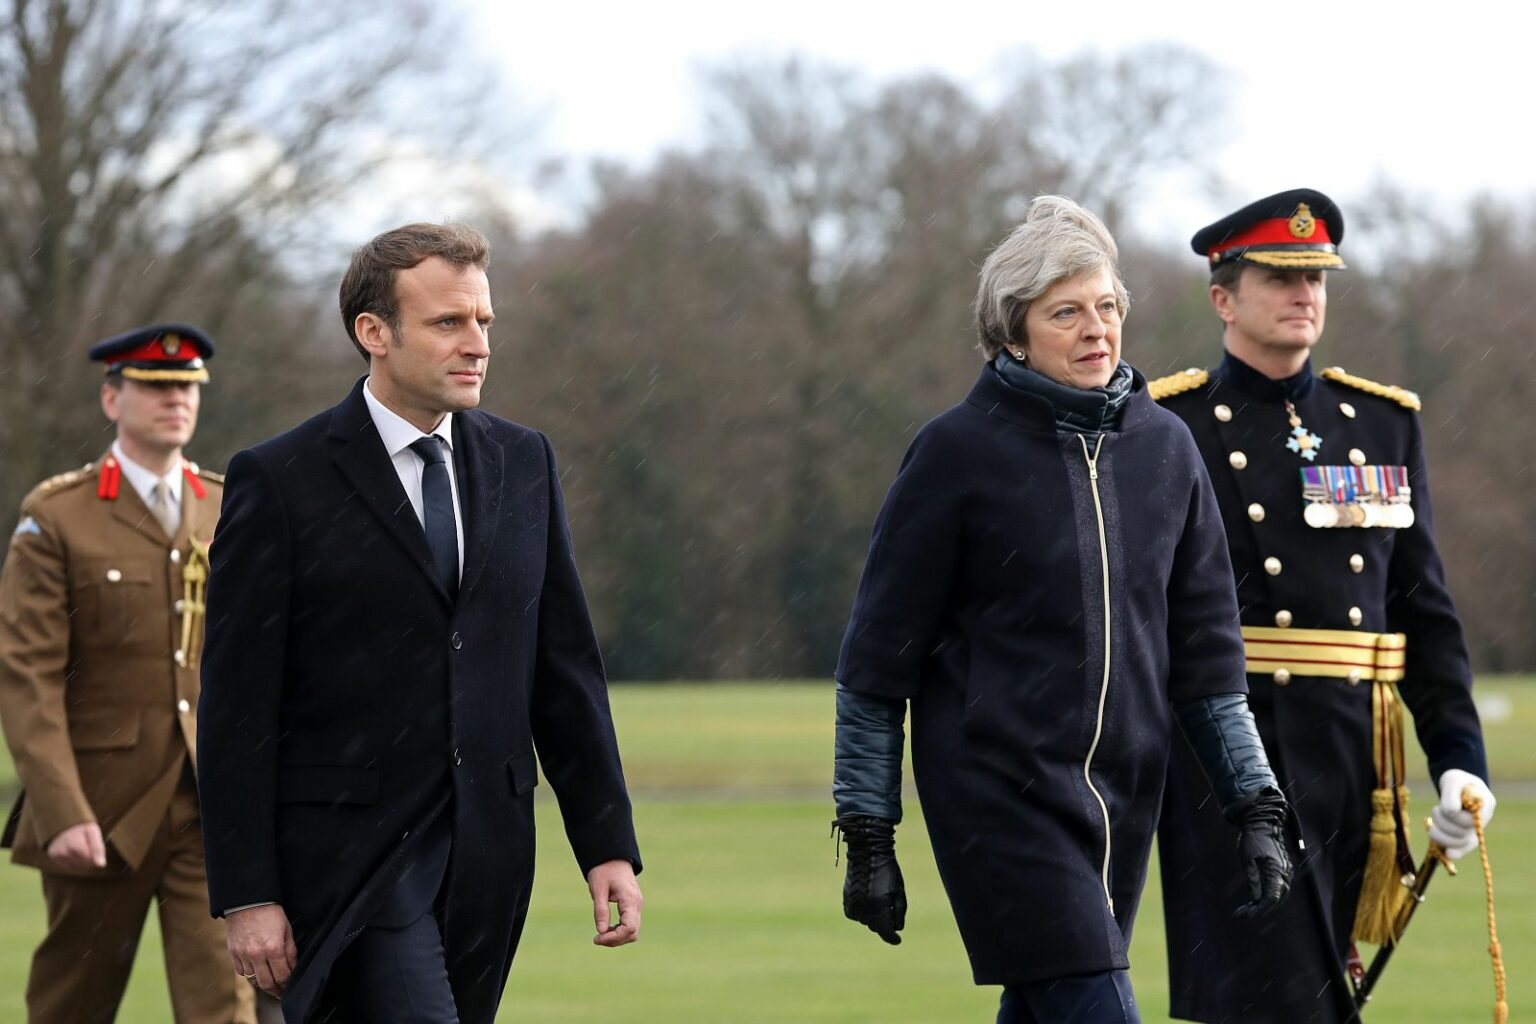 French President Emmanuel Macron (2nd L) and Britain's Prime Minister Theresa May (2nd R) arrive to review an honour guard at the Royal Military Academy Sandhurst, west of London on January 18, 2018. President Macron will take part in a Franco-British summit.